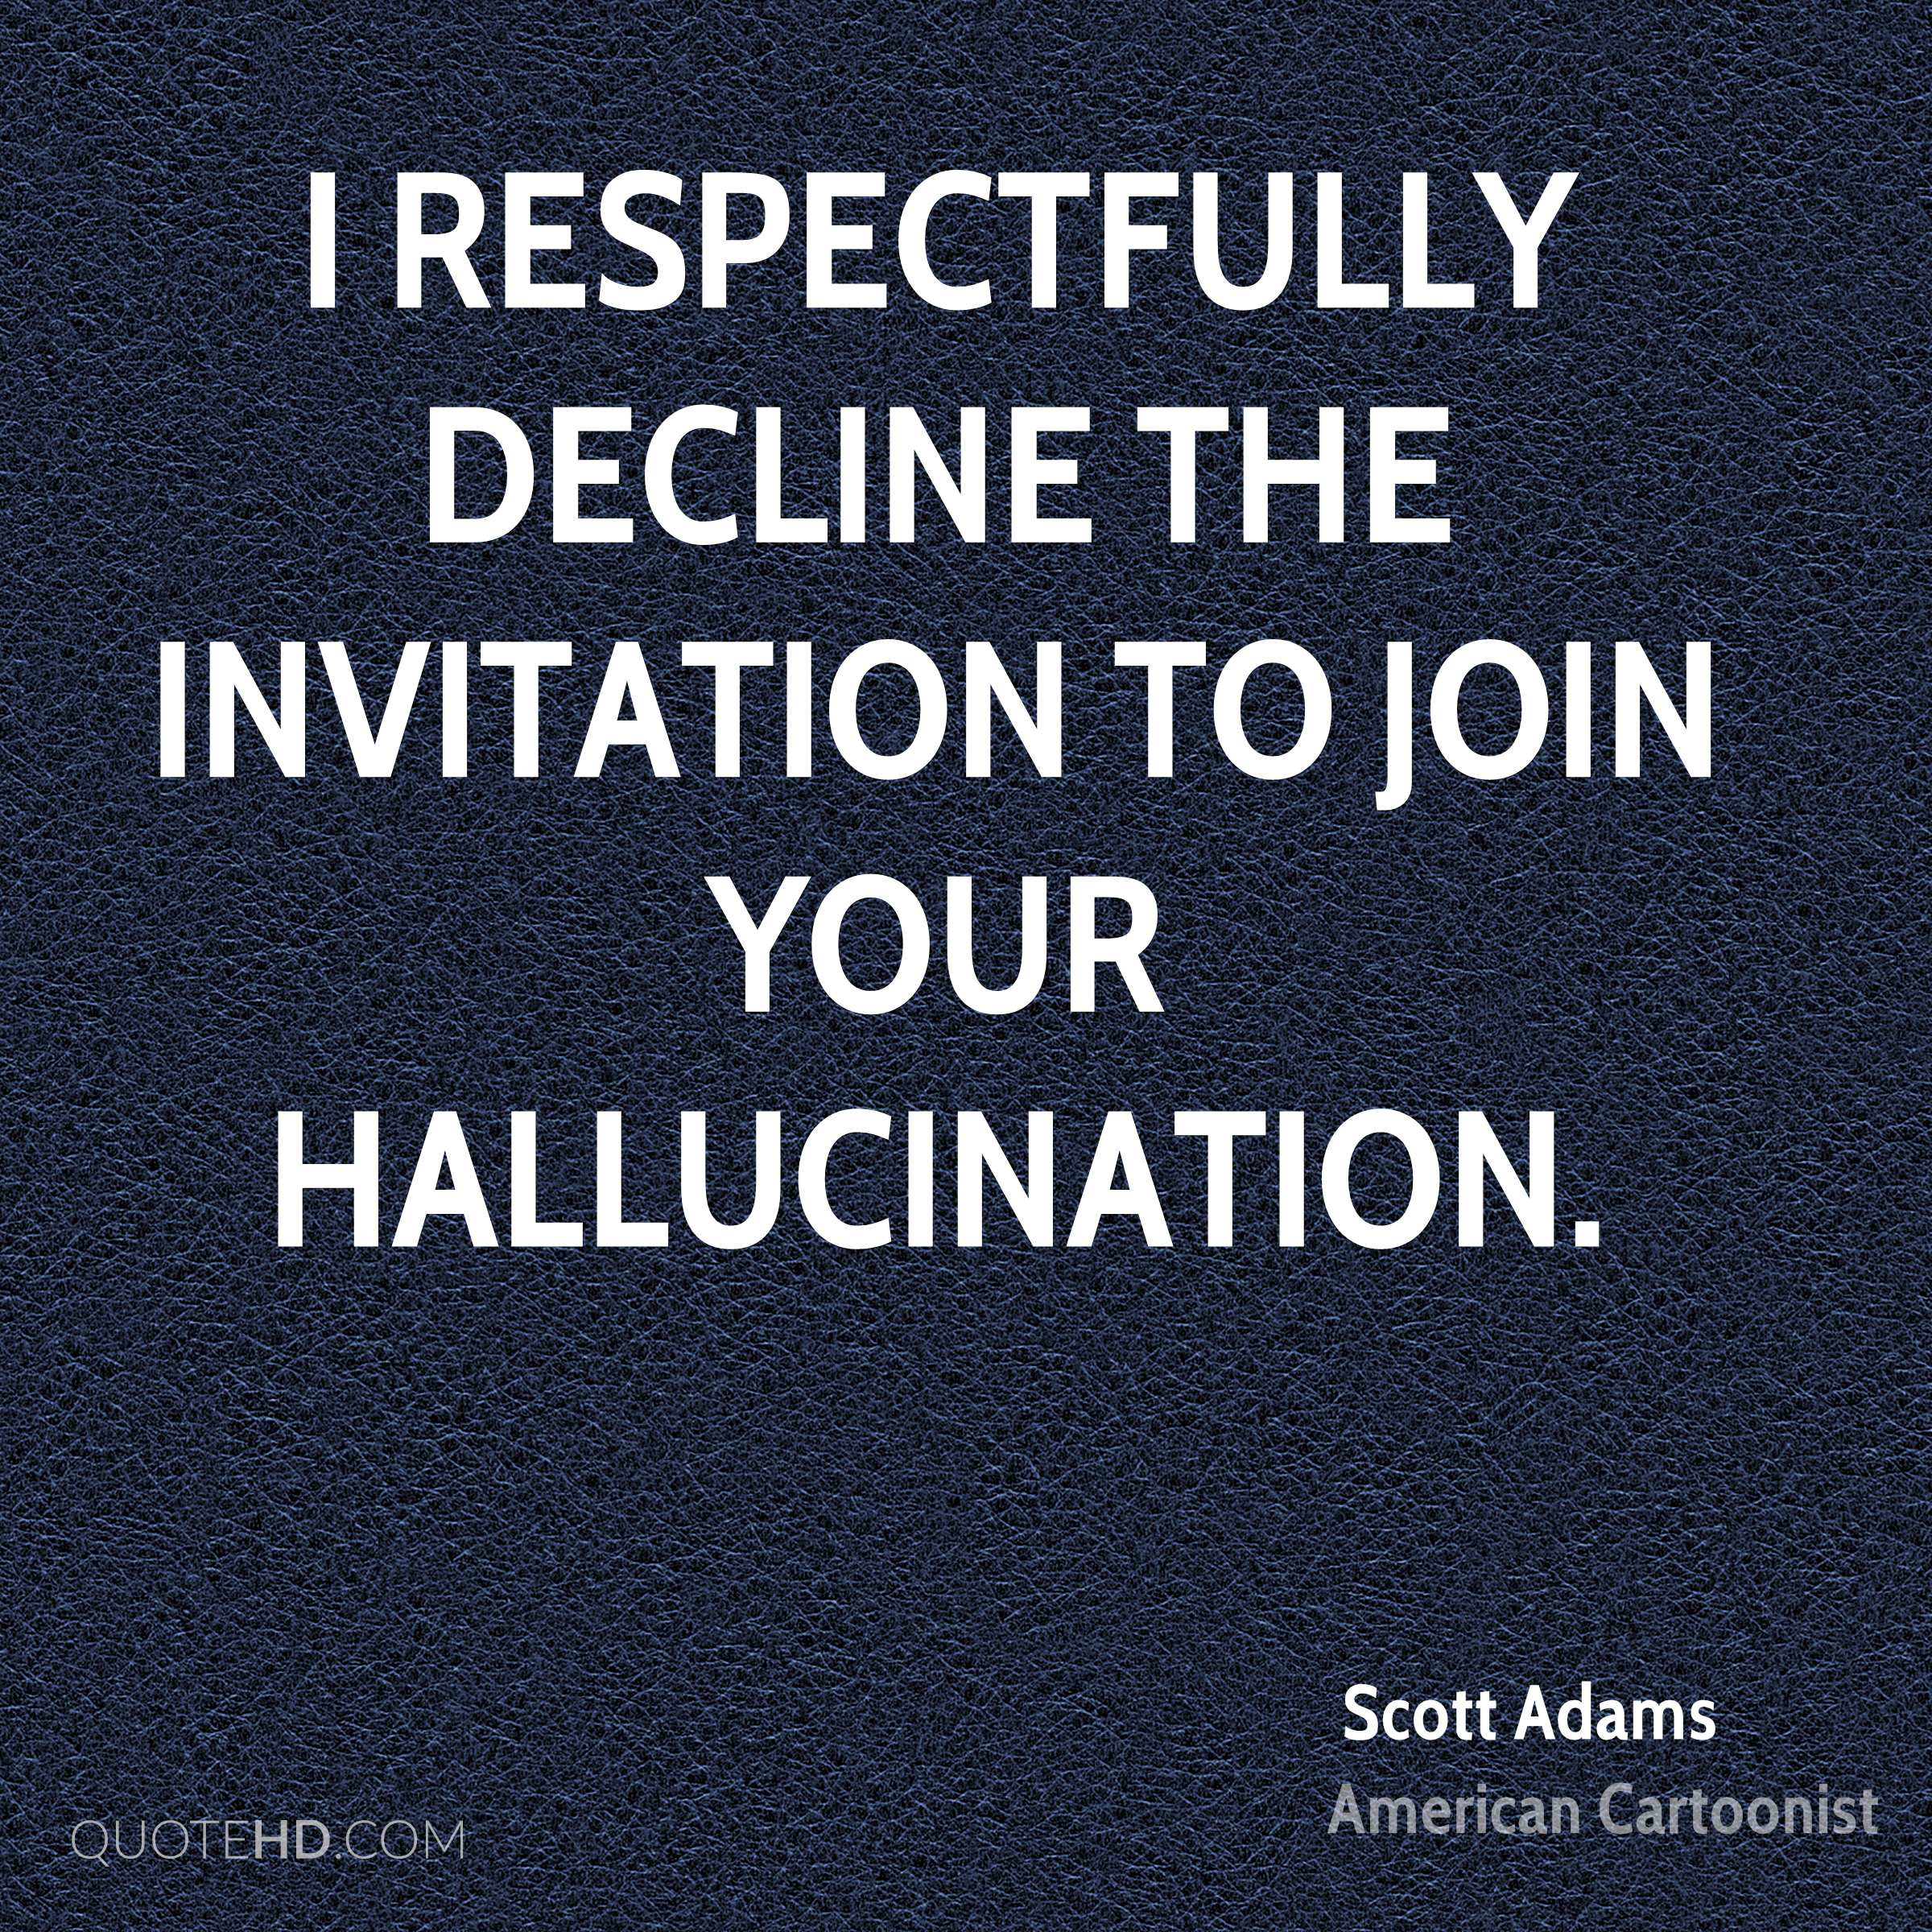 Scott adams quotes quotehd i respectfully decline the invitation to join your hallucination stopboris Gallery